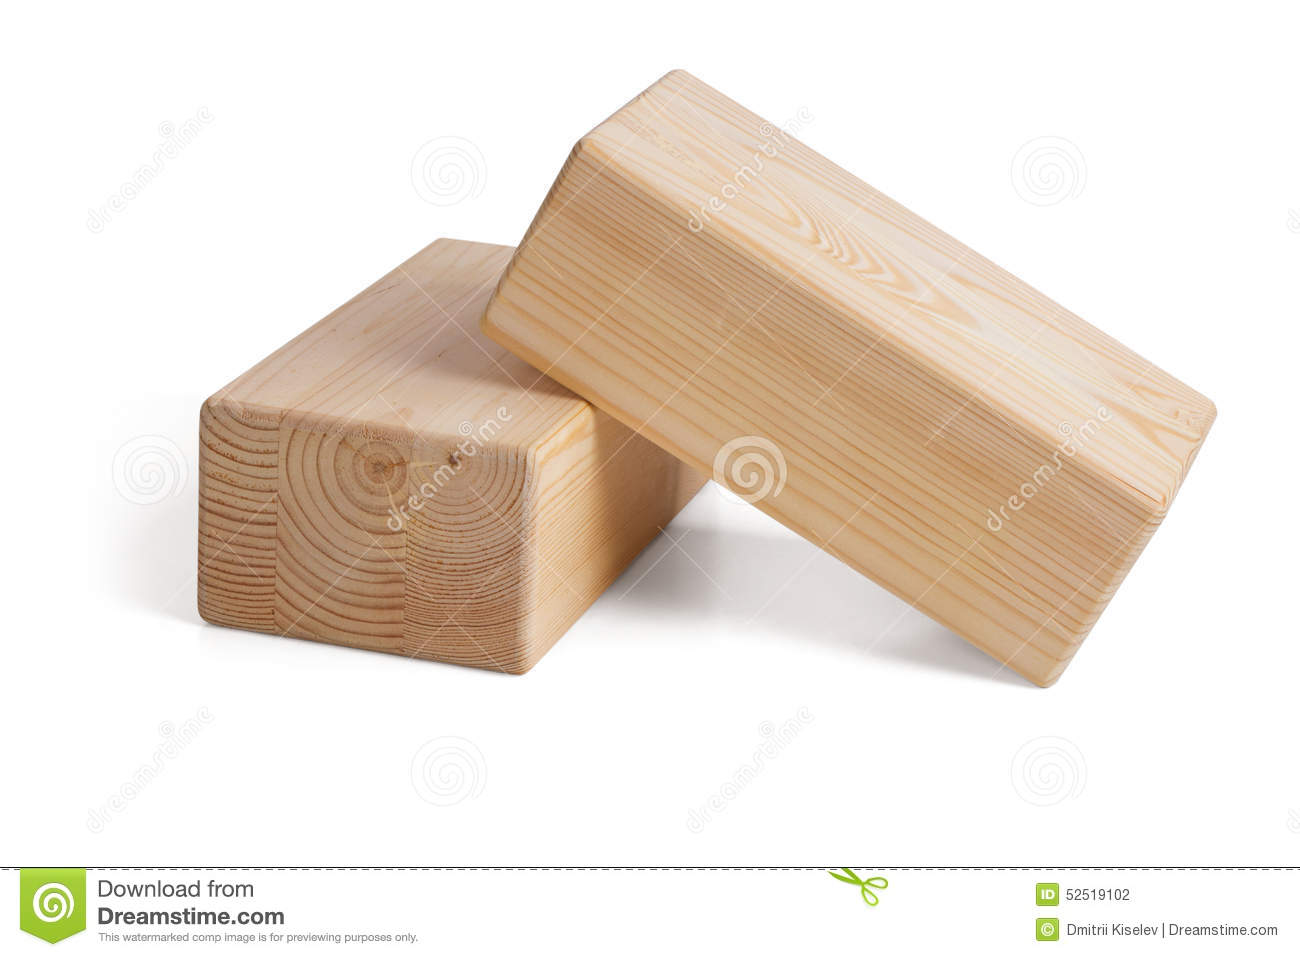 Wooden Bricks For Yoga On A White Background Stock Photo